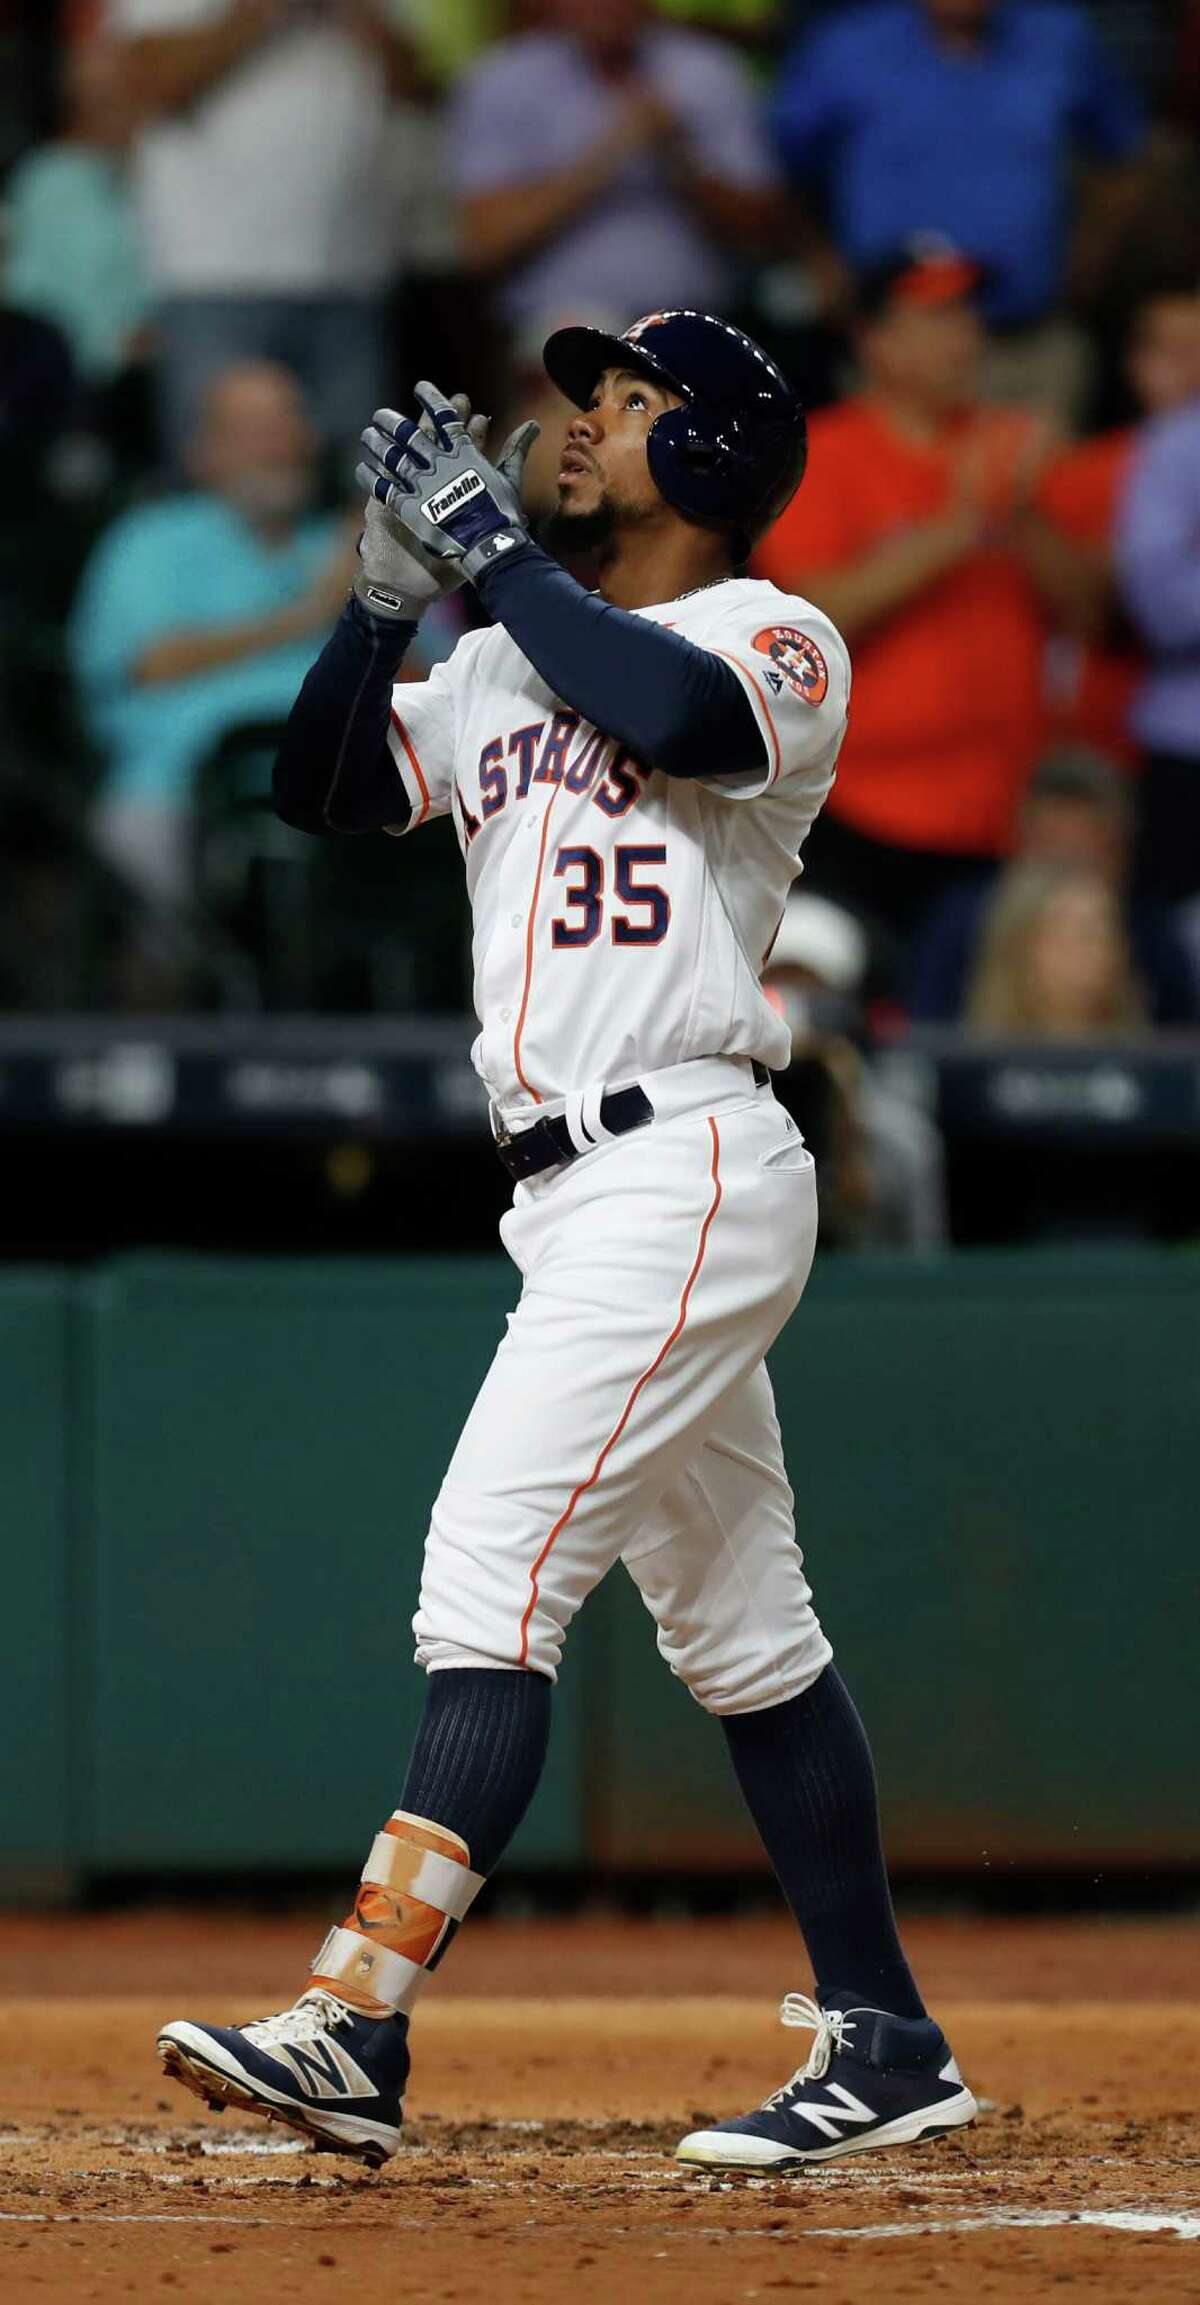 Houston Astros center fielder Teoscar Hernandez (35) reacts after hitting a two-run home run during the second inning of an MLB game at Minute Maid Park, Wednesday, Sept. 14, 2016 in Houston.